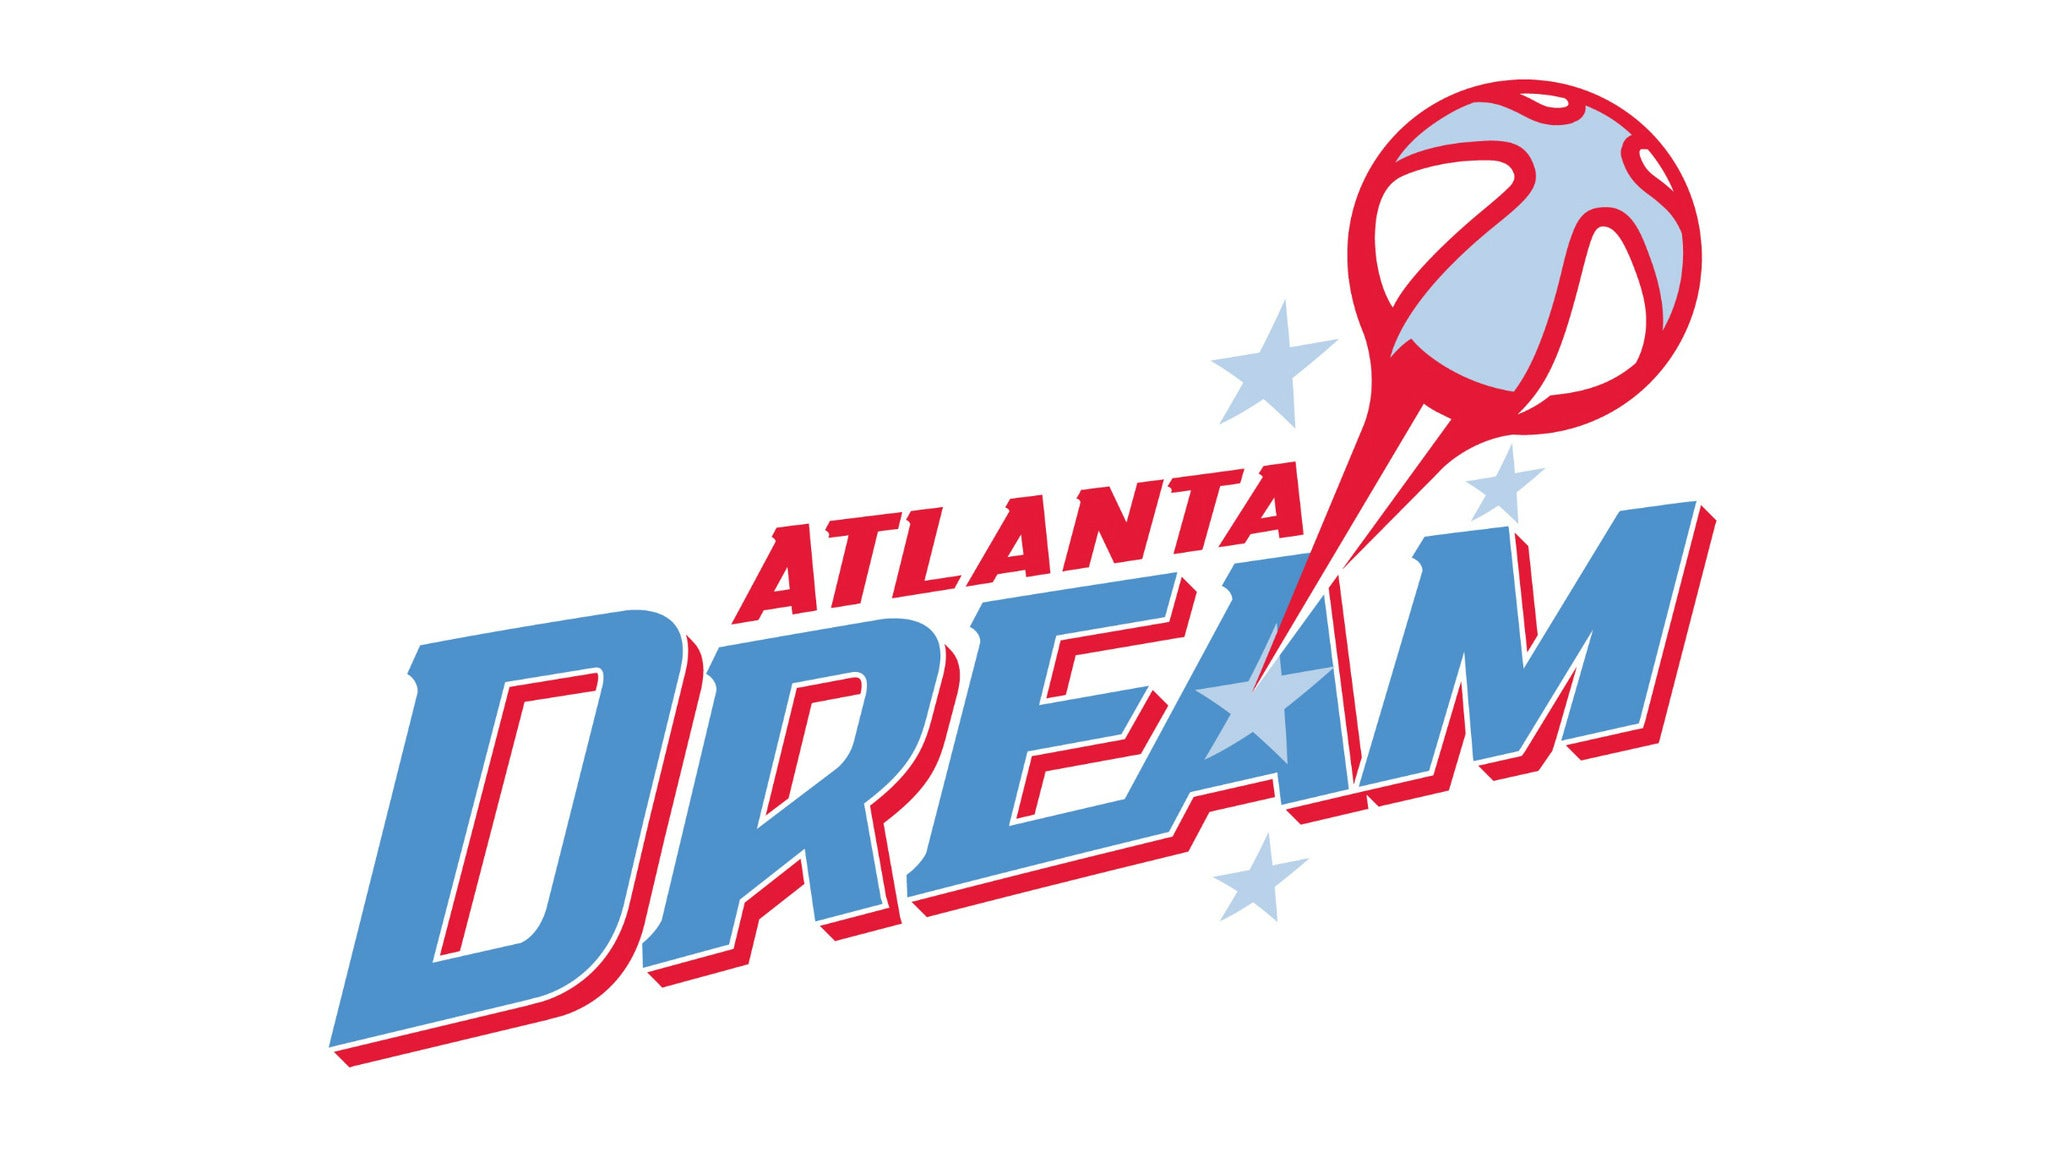 Atlanta Dream vs. Los Angeles Sparks